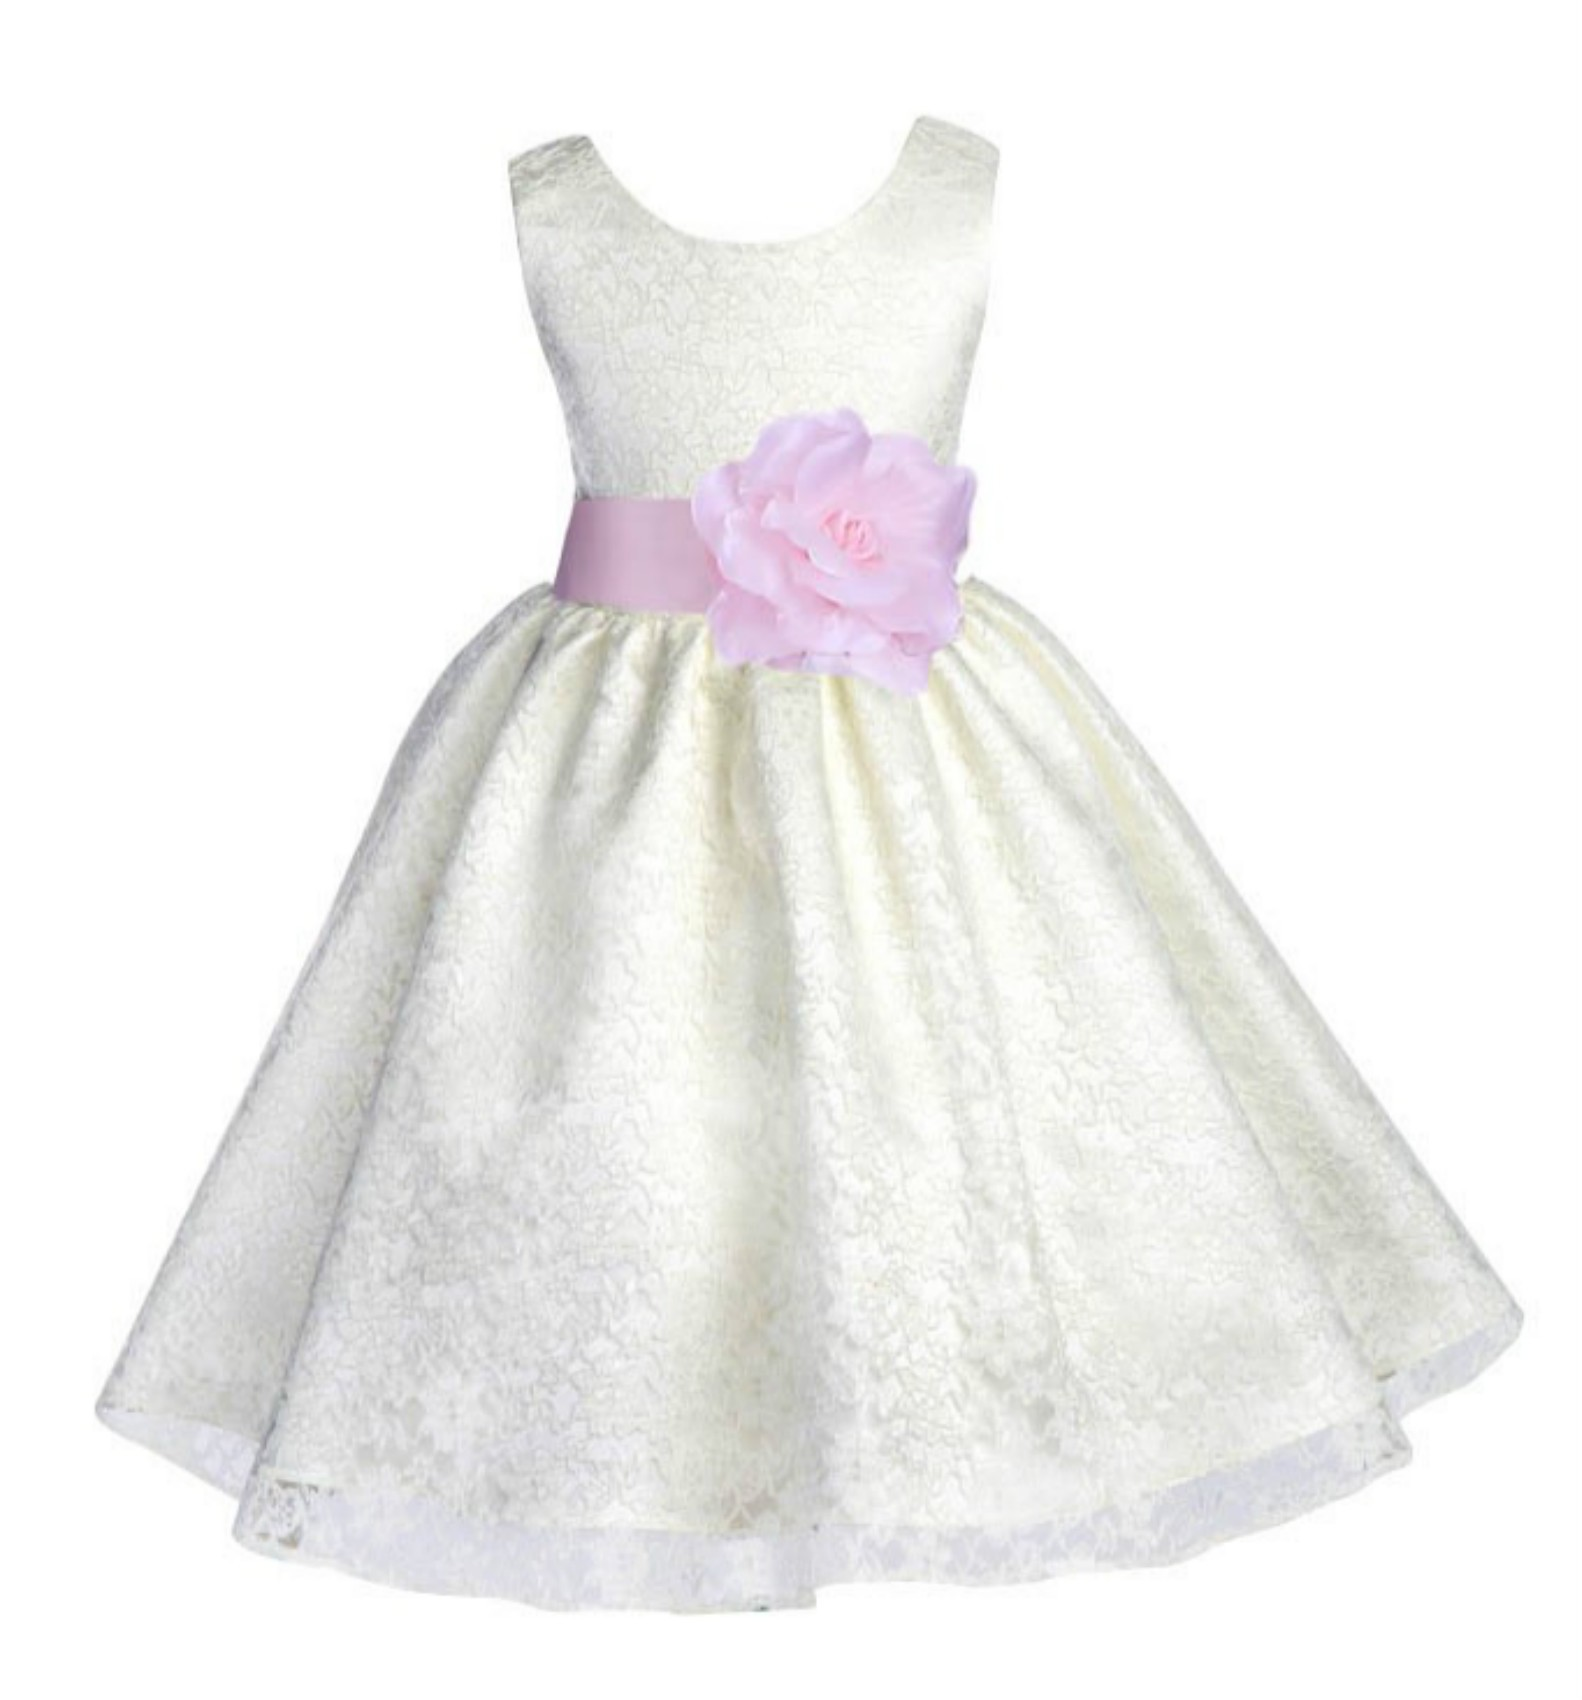 Ivory/Pink Floral Lace Overlay Flower Girl Dress Special Event 163S